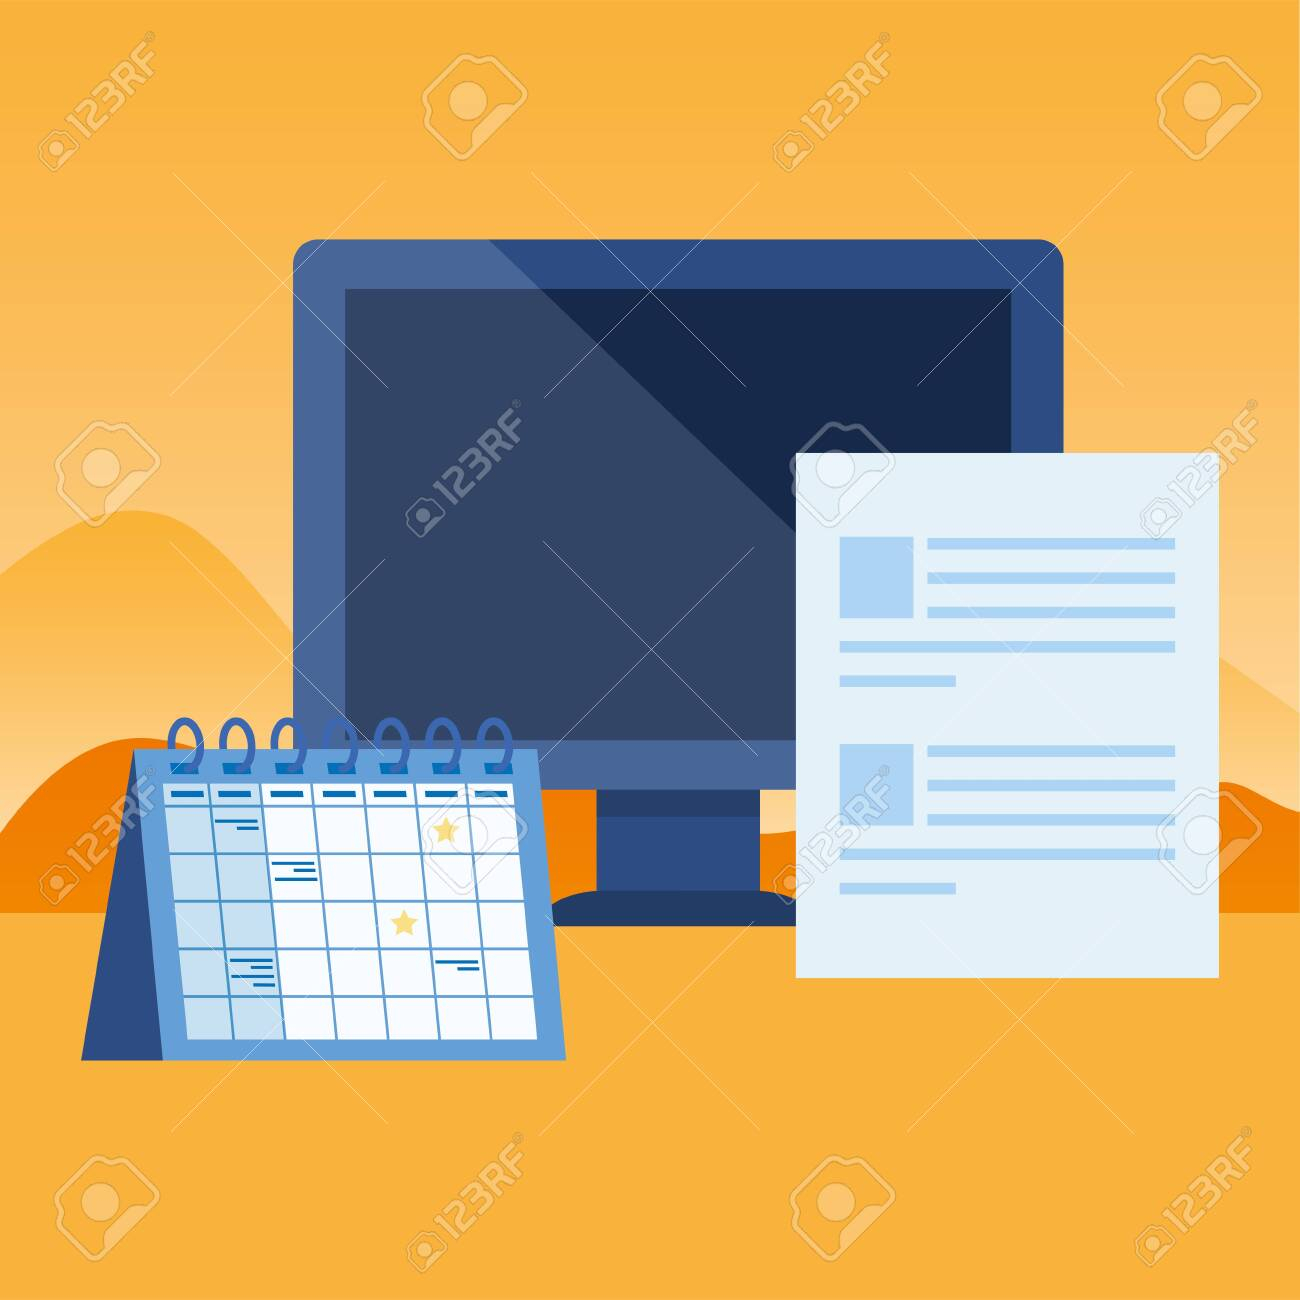 Desktop Computer With Calendar Reminder Vector Illustration Design for Desktop Calendar Reminder Free Full Version